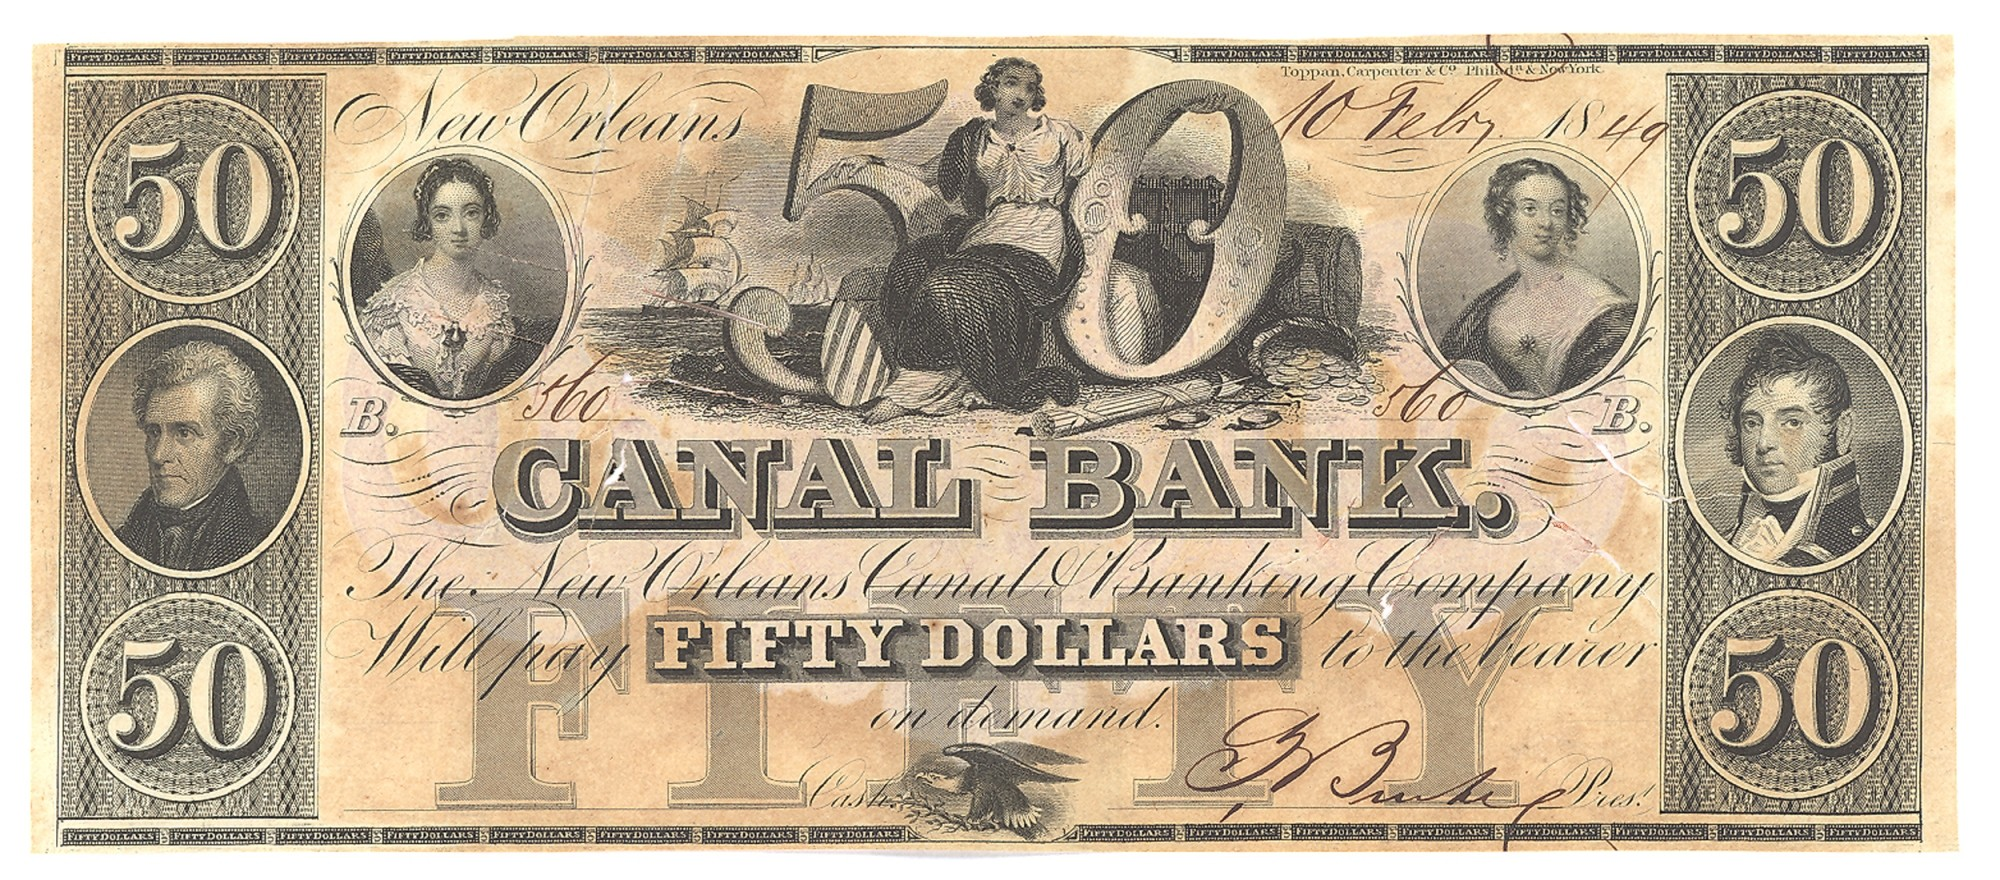 CANAL BANK, LOUSIANA, $50 NOTE